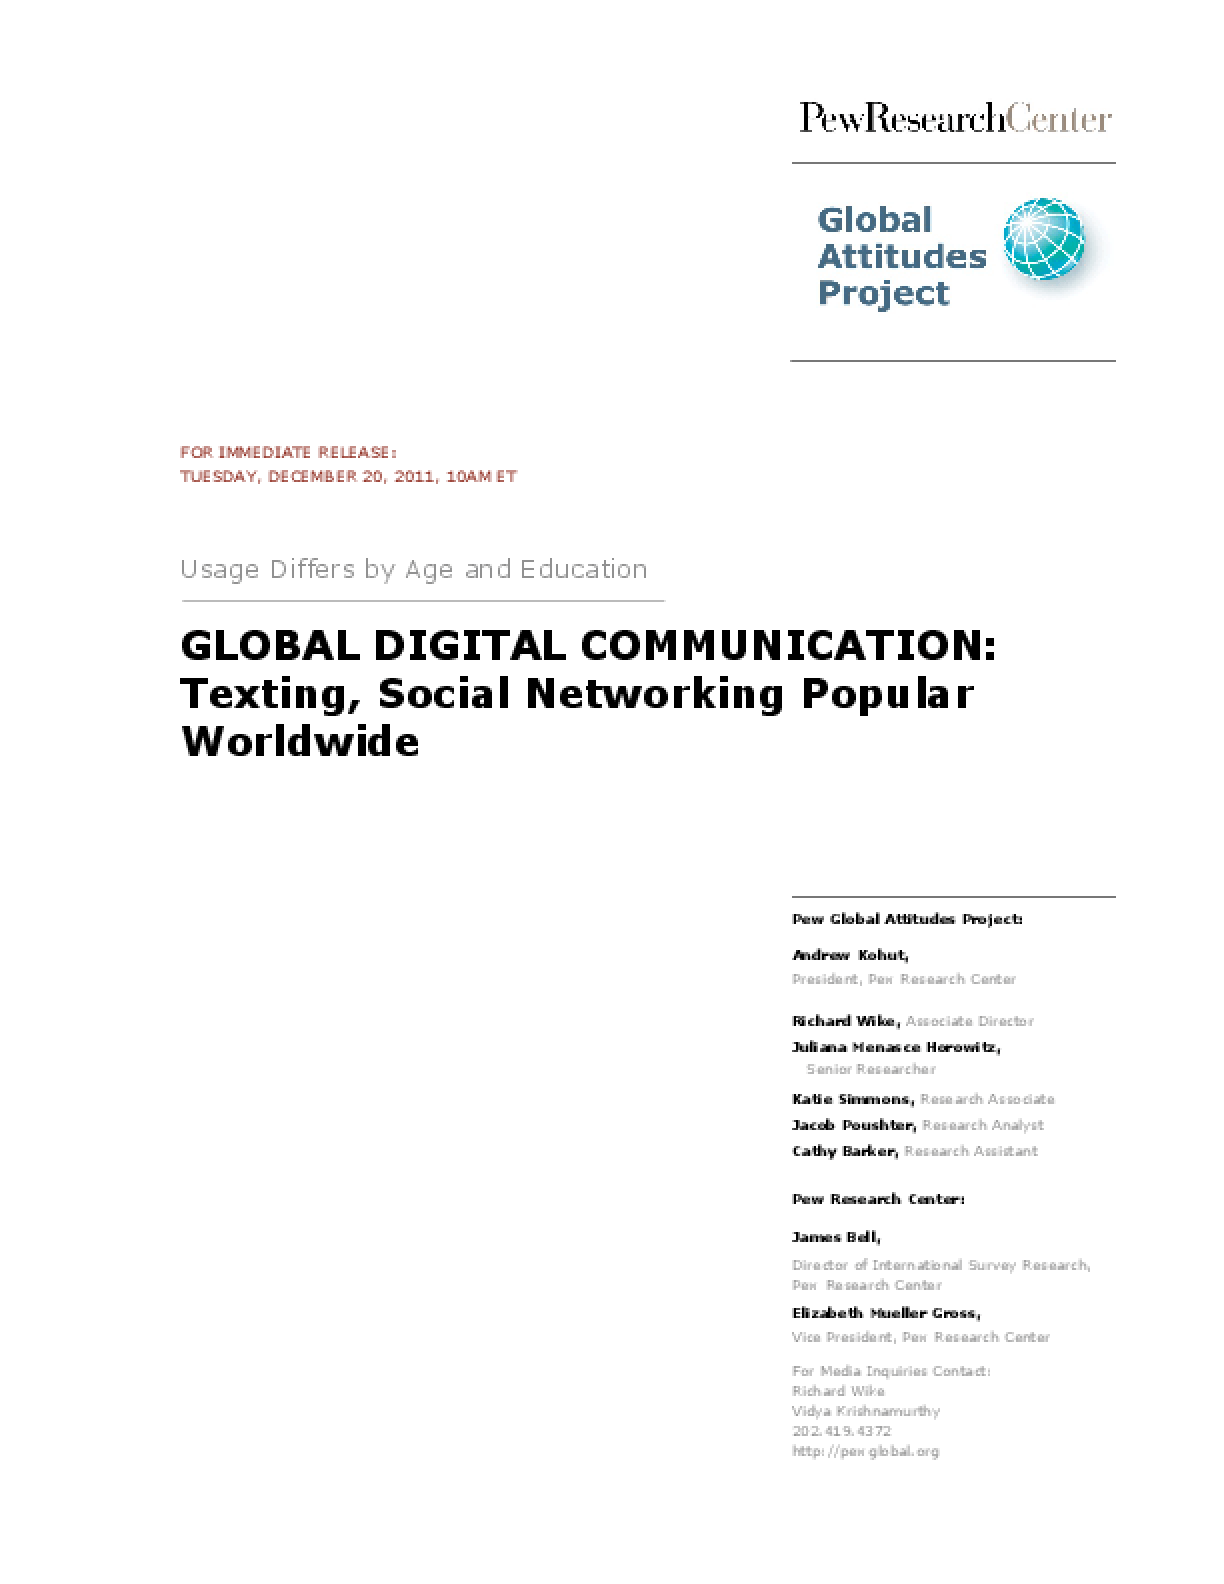 Global Digital Communication: Texting, Social Networking Popular Worldwide